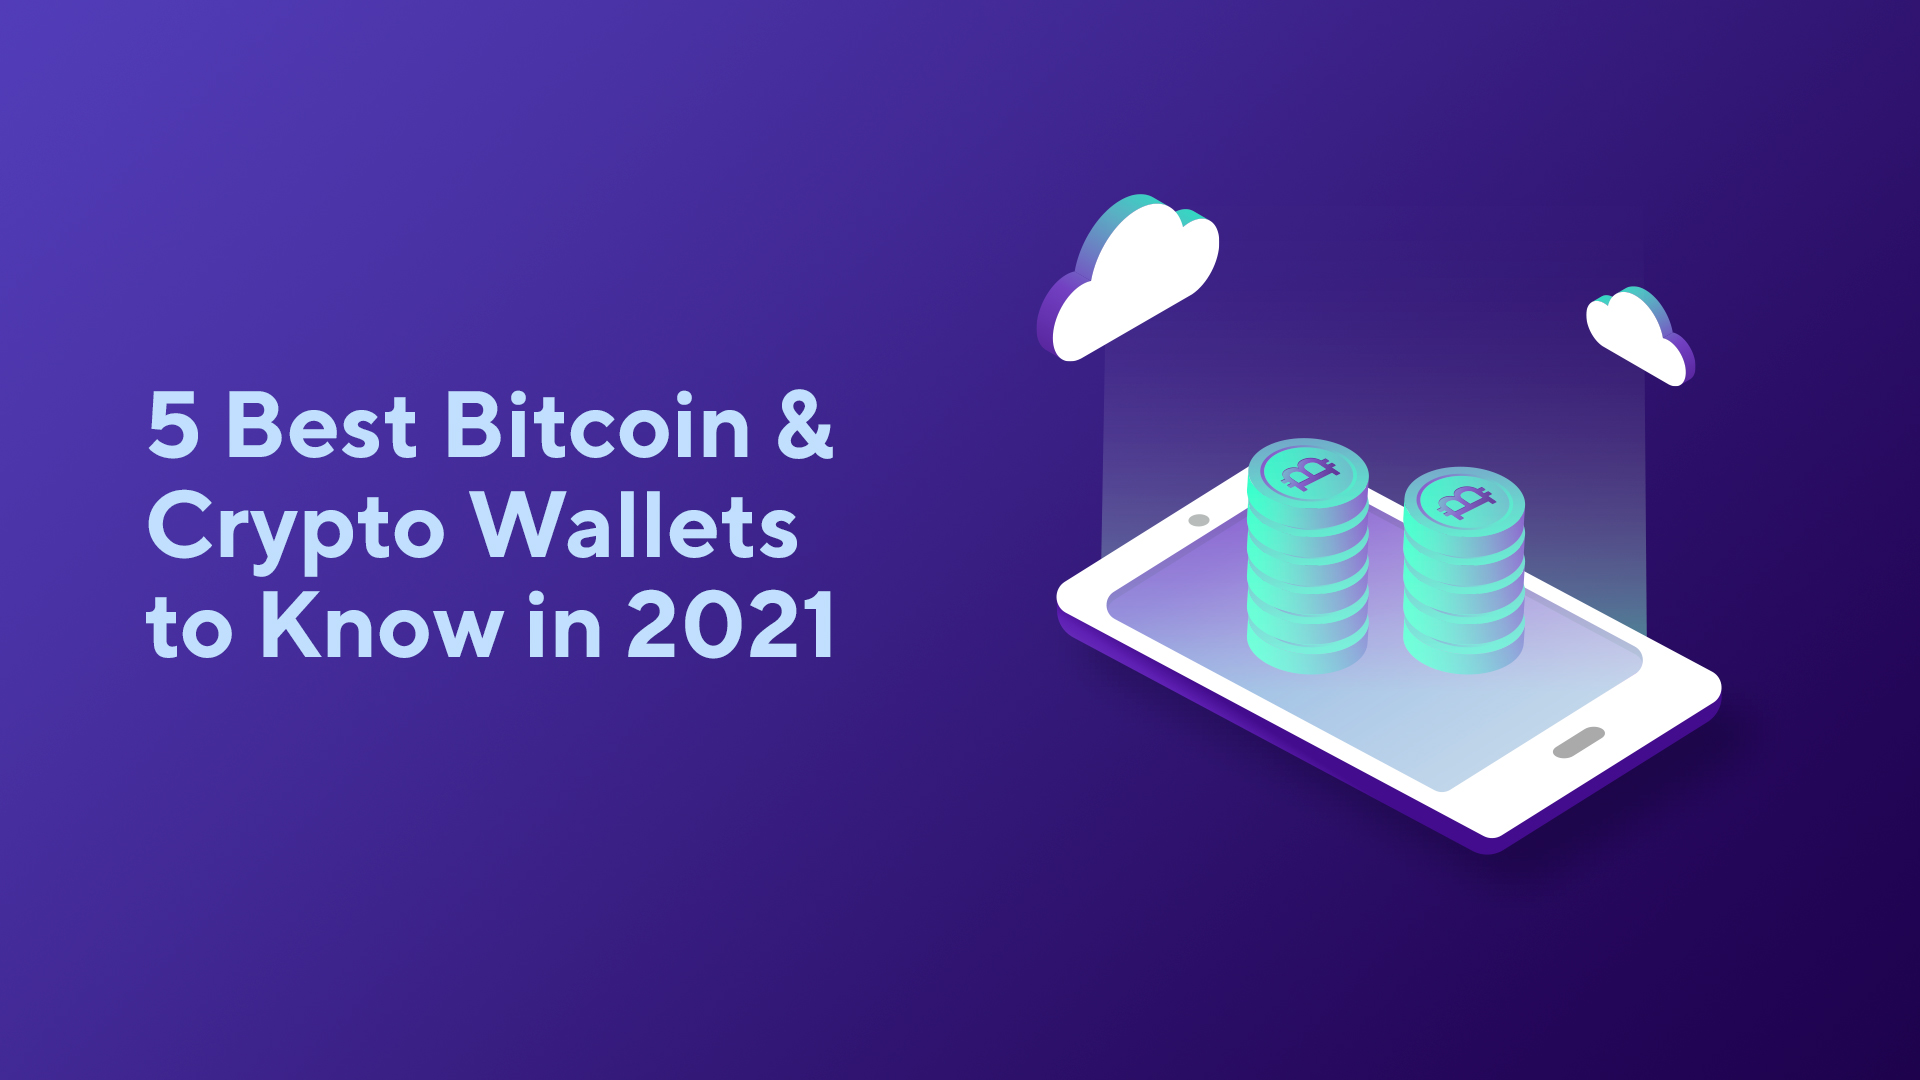 5 Best Bitcoin & Crypto Wallets to Know in 2021